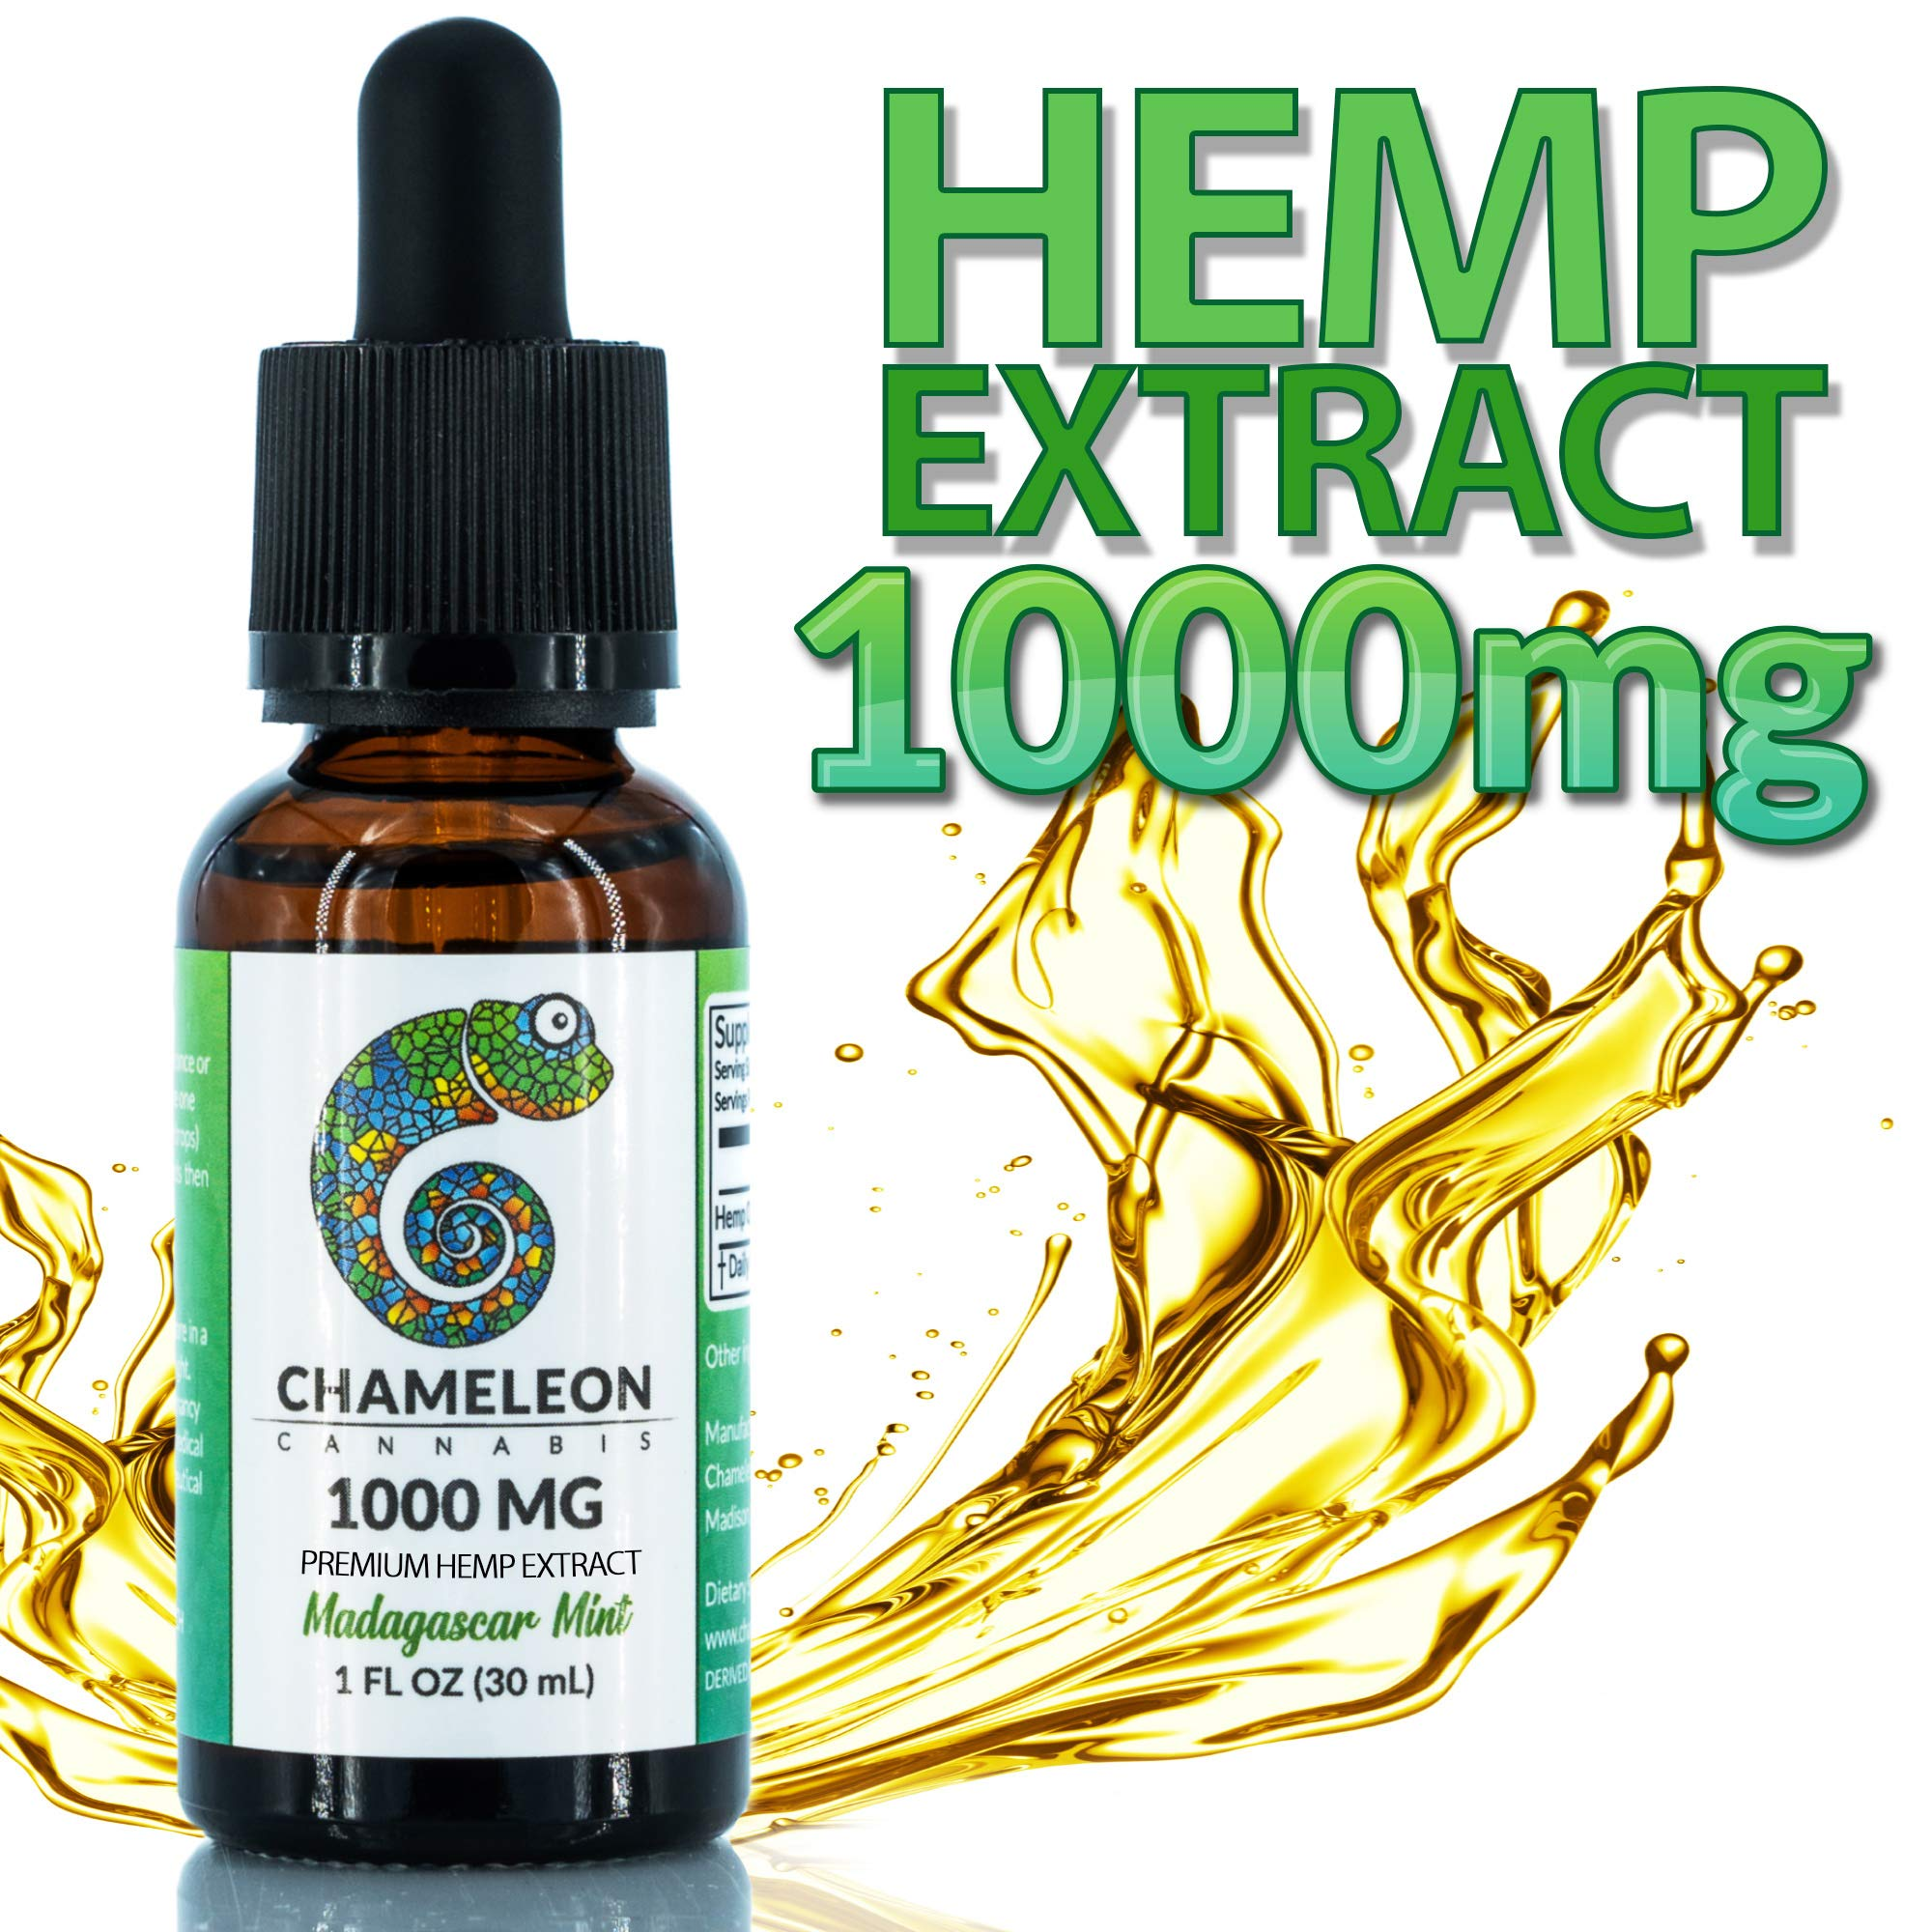 Chameleon Hemp Oil (Mint) 1000mg, Hemp Oil for Pain, Stress Relief, Mood Support, Healthy Sleep Patterns (1000mg, 33mg per Serving x 30 Servings) by Chameleon Cannabis